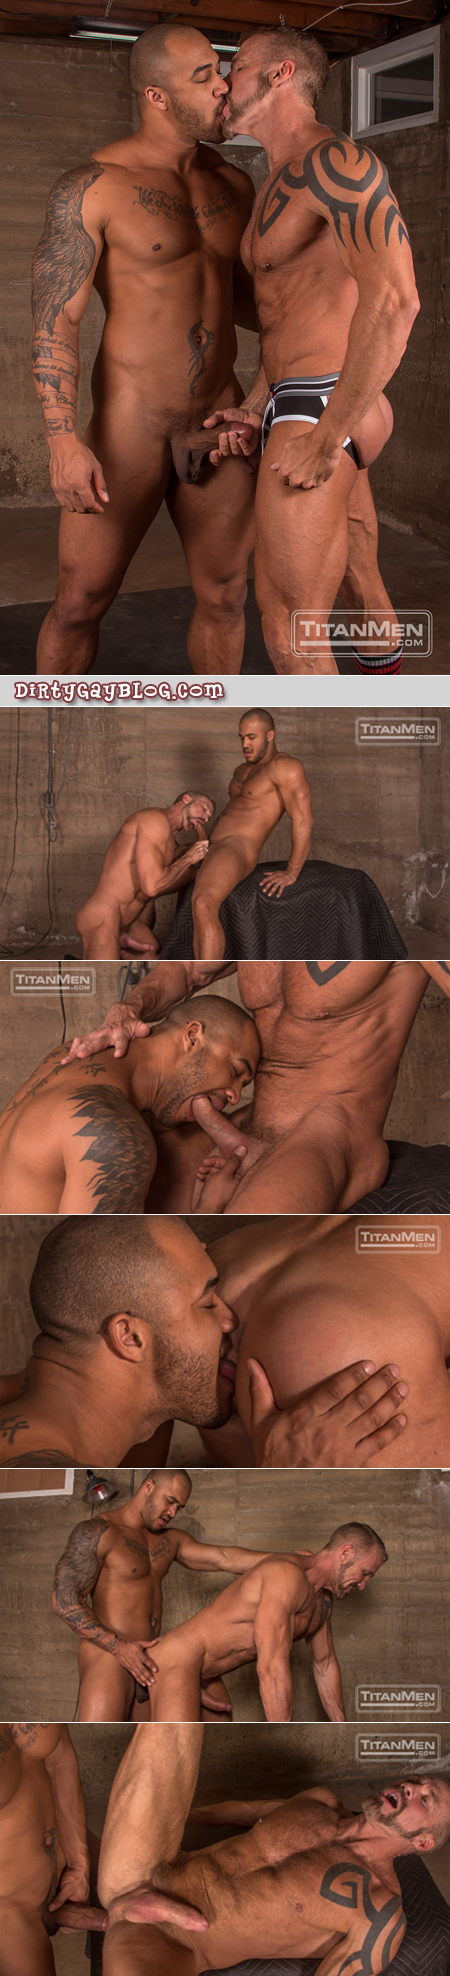 Hairy muscle Daddy taking the huge veiny uncut cock of a giant bodybuilder.